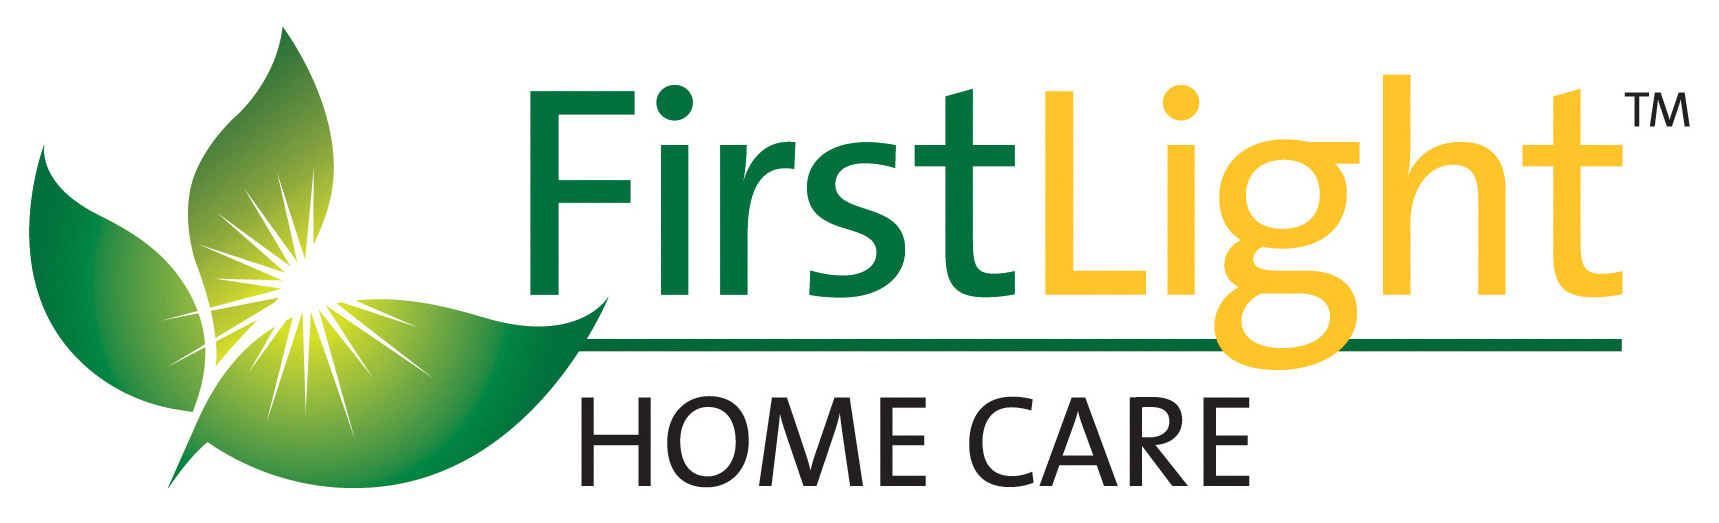 FirstLight Home Care of Greater, Lansing, MI